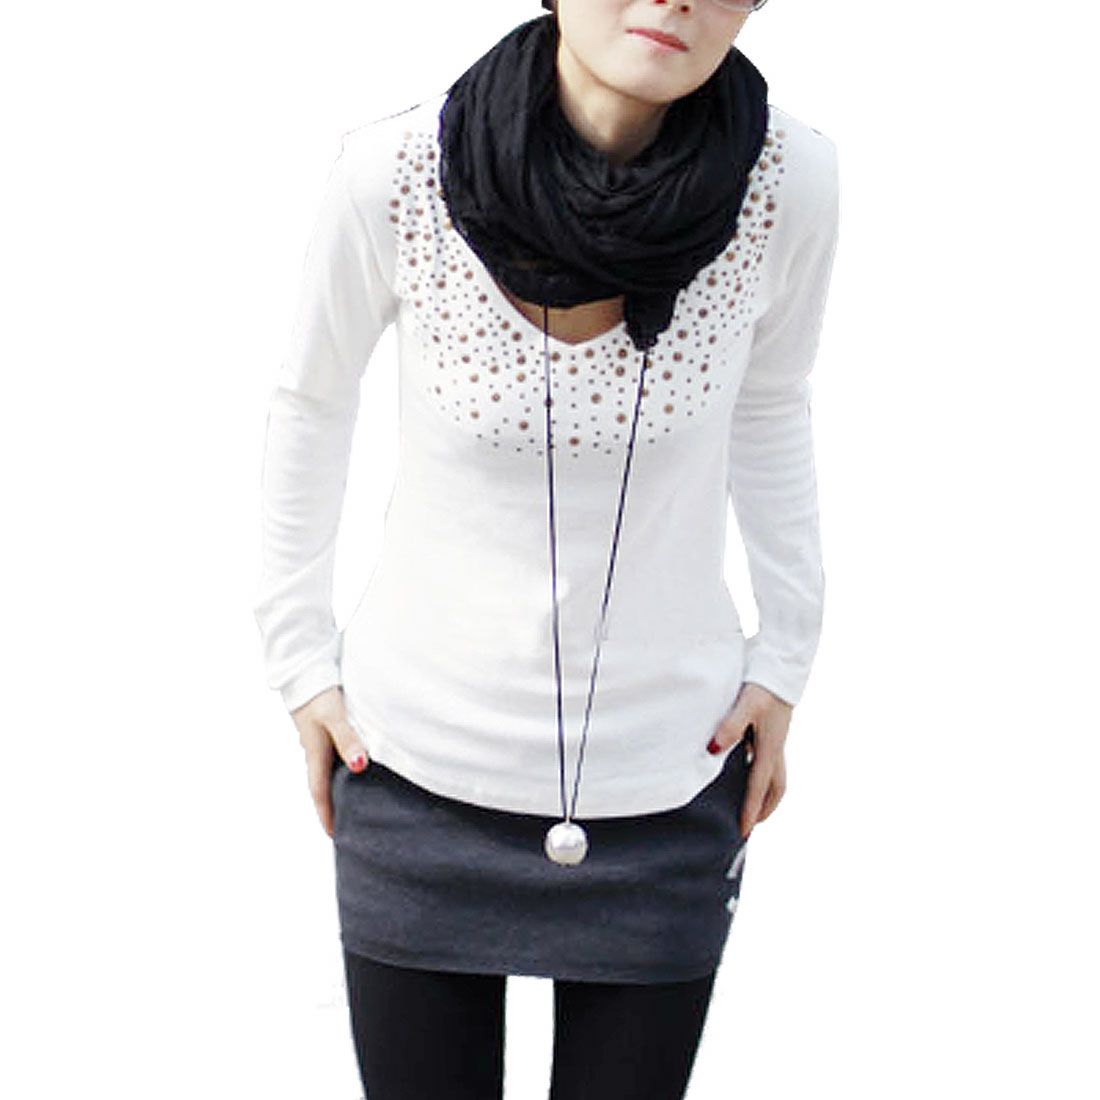 Stud Decor V Neck Long Sleeves White Shirt XS for Lady